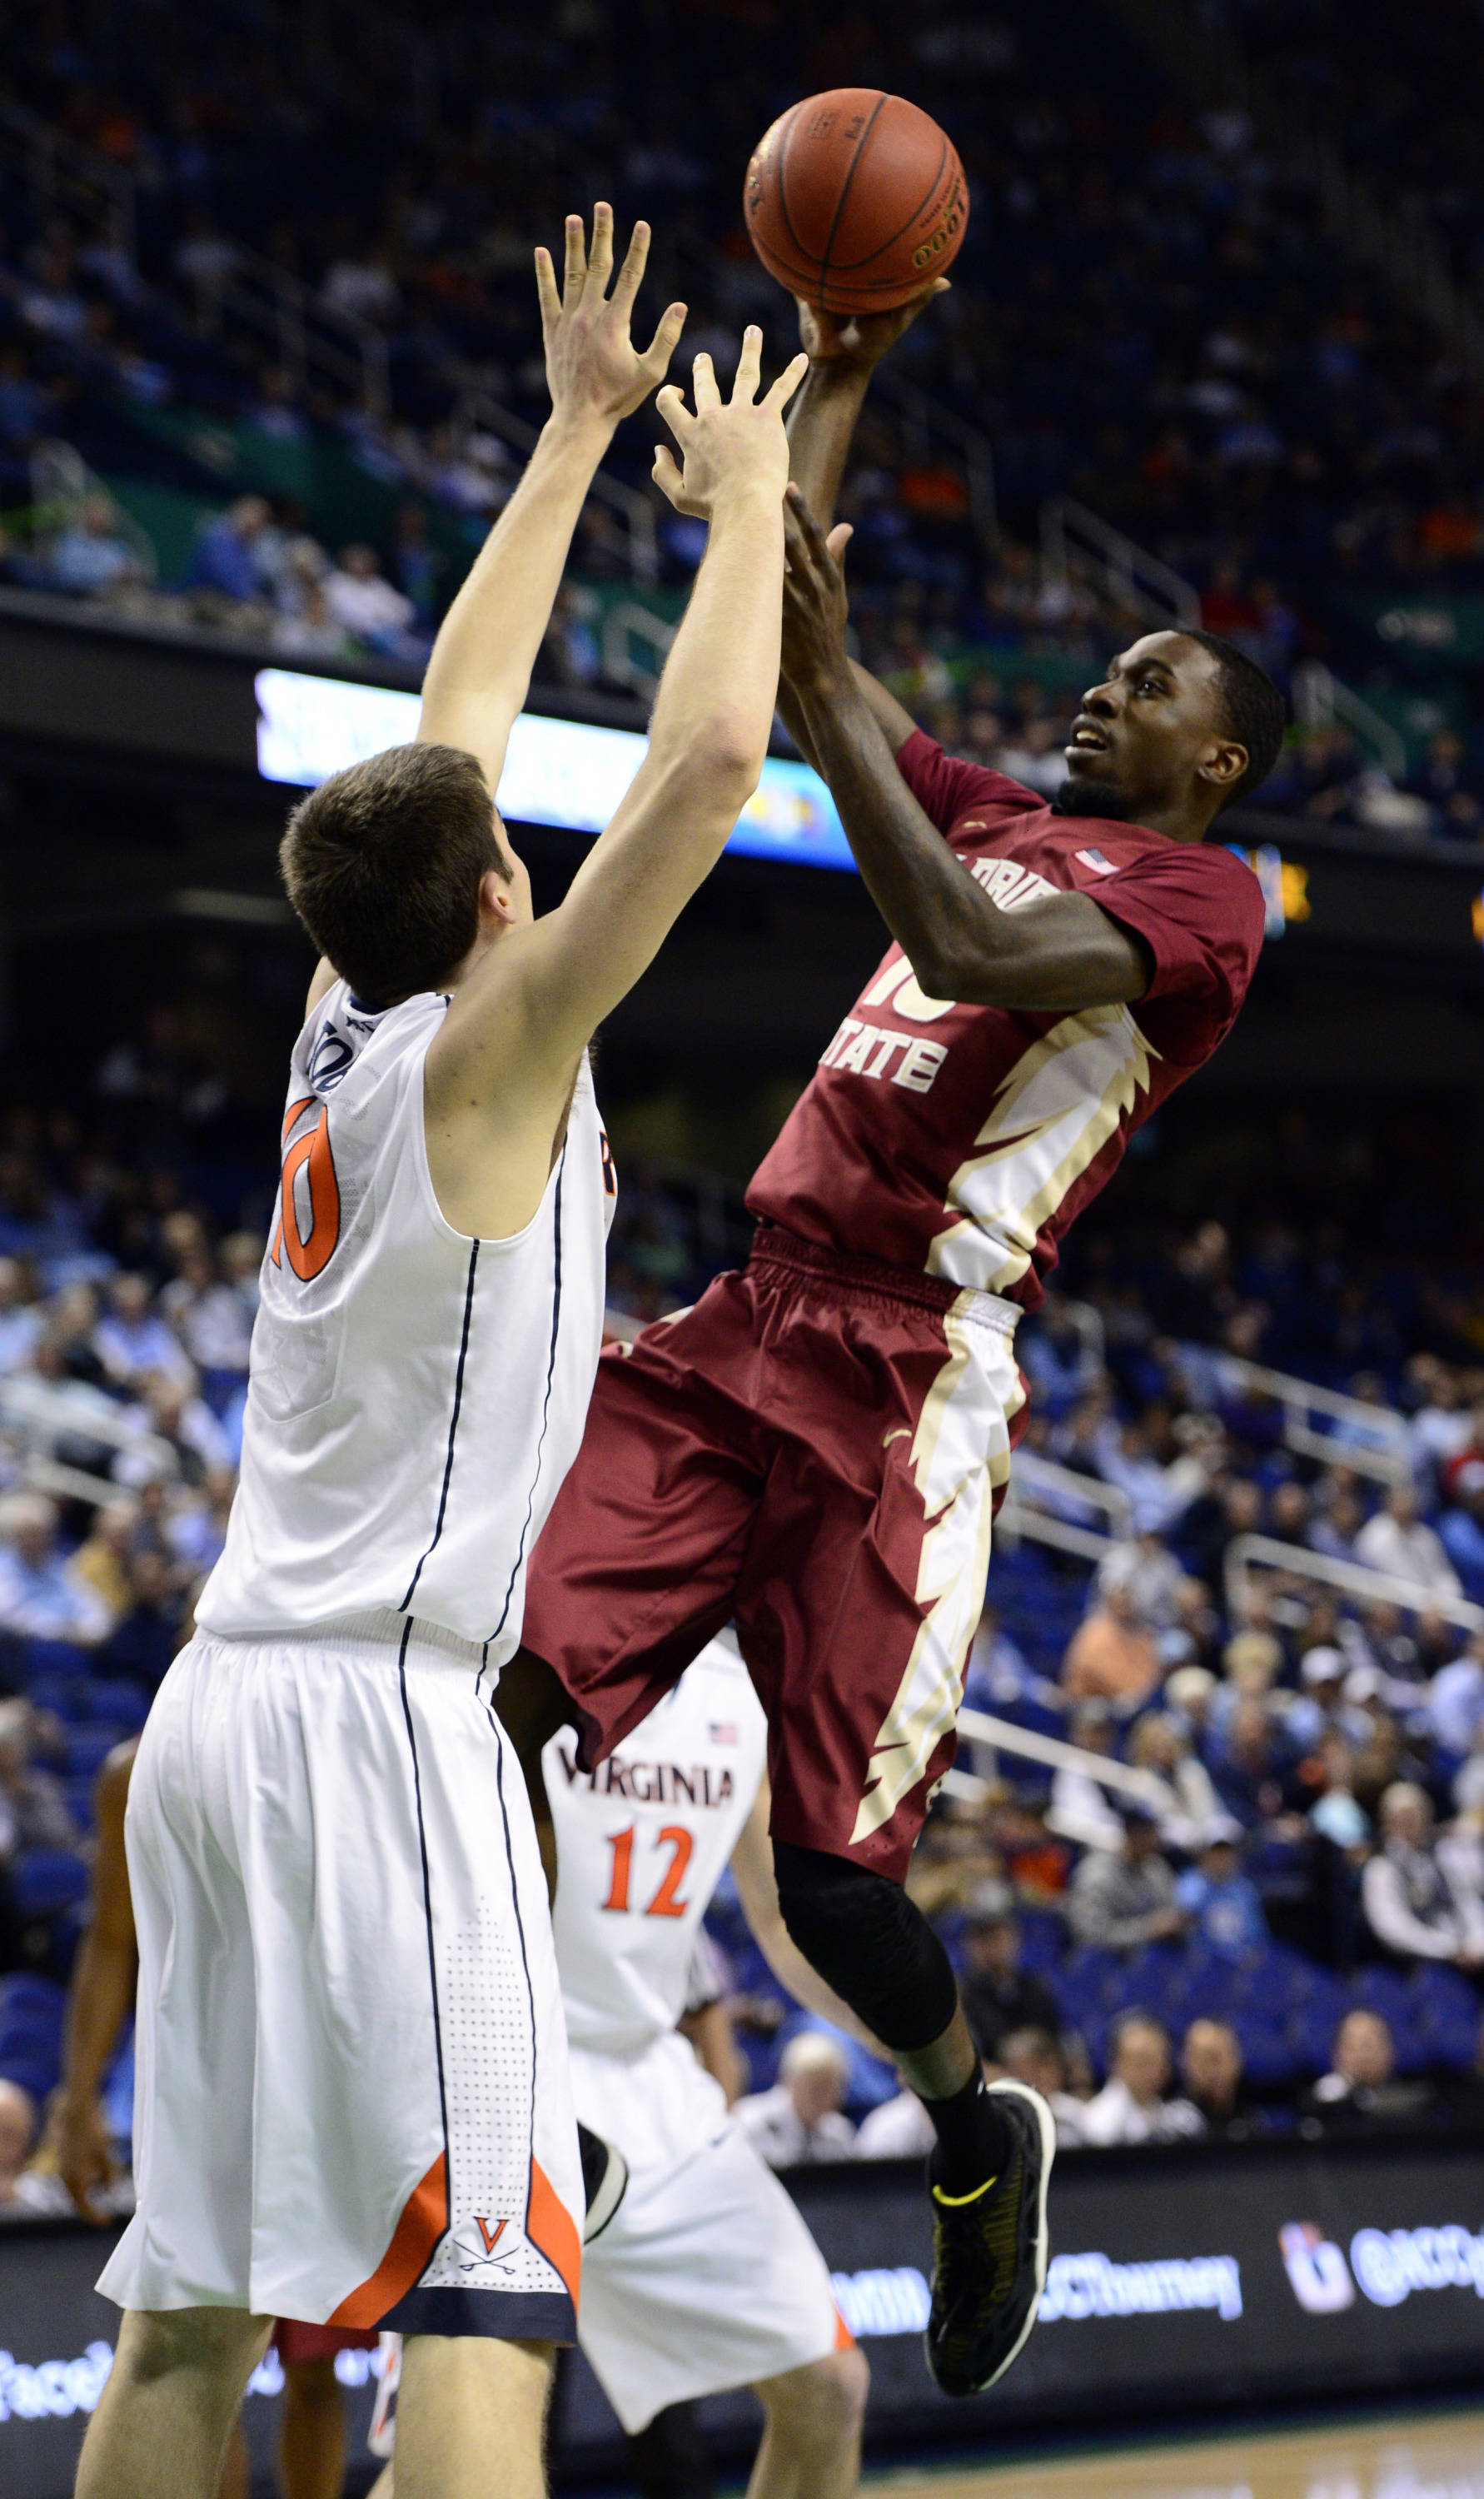 Mar 14, 2014; Greensboro, NC, USA;  Florida State Seminoles forward Okaro White (10) goes up for a shot over Virginia Cavaliers forward/center Mike Tobey (10) in the quarterfinals of the ACC college basketball tournament at Greensboro Coliseum. Mandatory Credit: John David Mercer-USA TODAY Sports